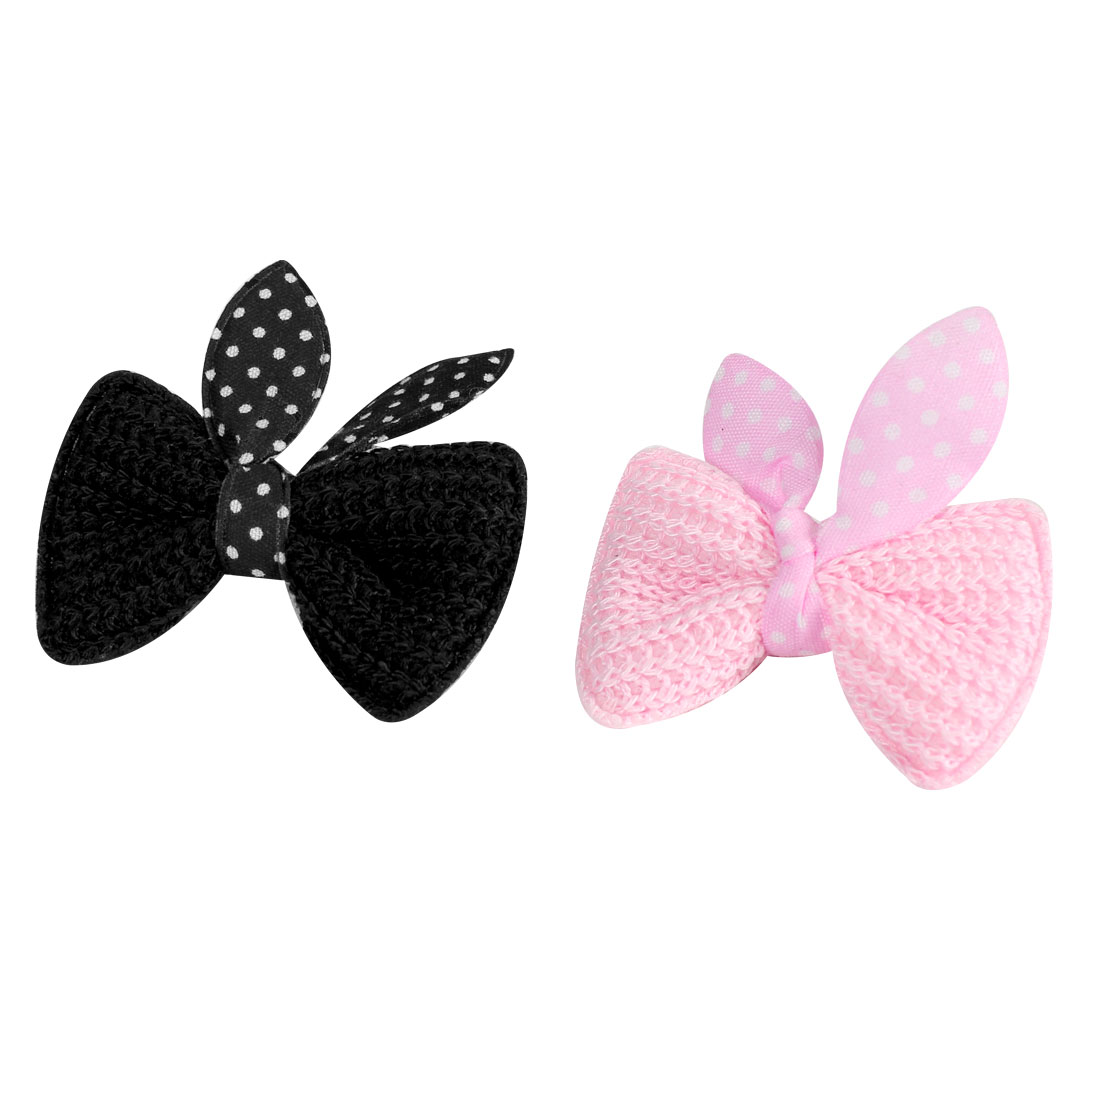 Childern White Black Dots Printed Bowknot Alligator Hair Clip Hairclips 2 Pcs